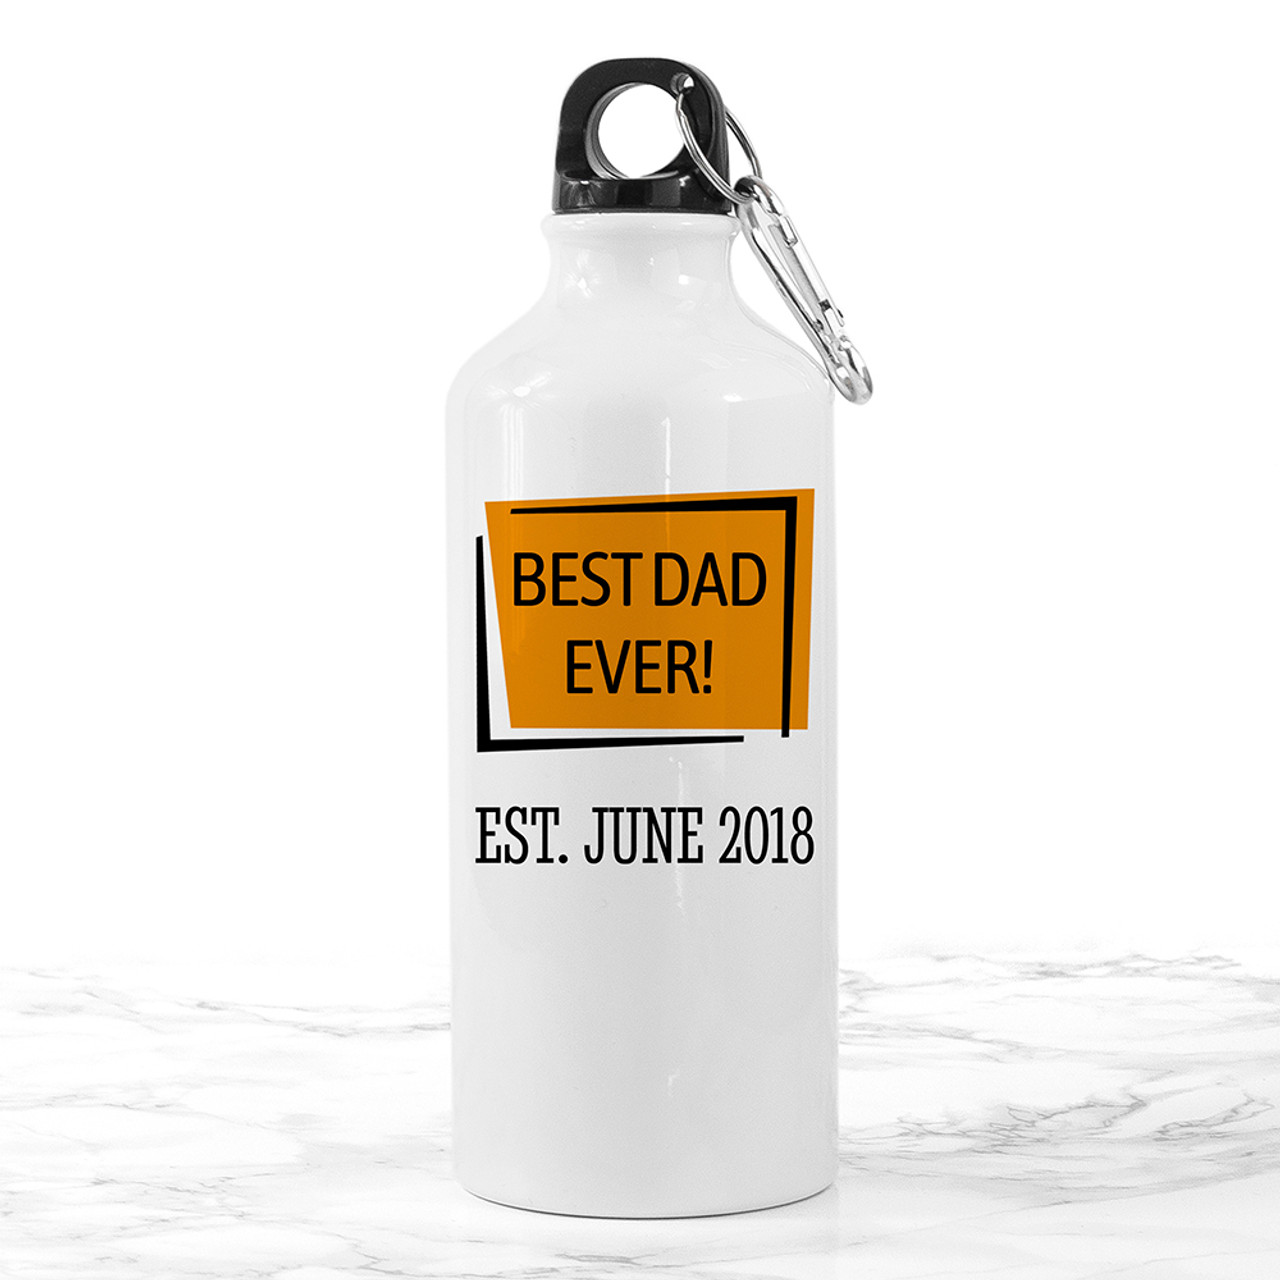 093719152a White Water Bottle · For the world's best Dad, Mum, Grandad, Nanny.... we